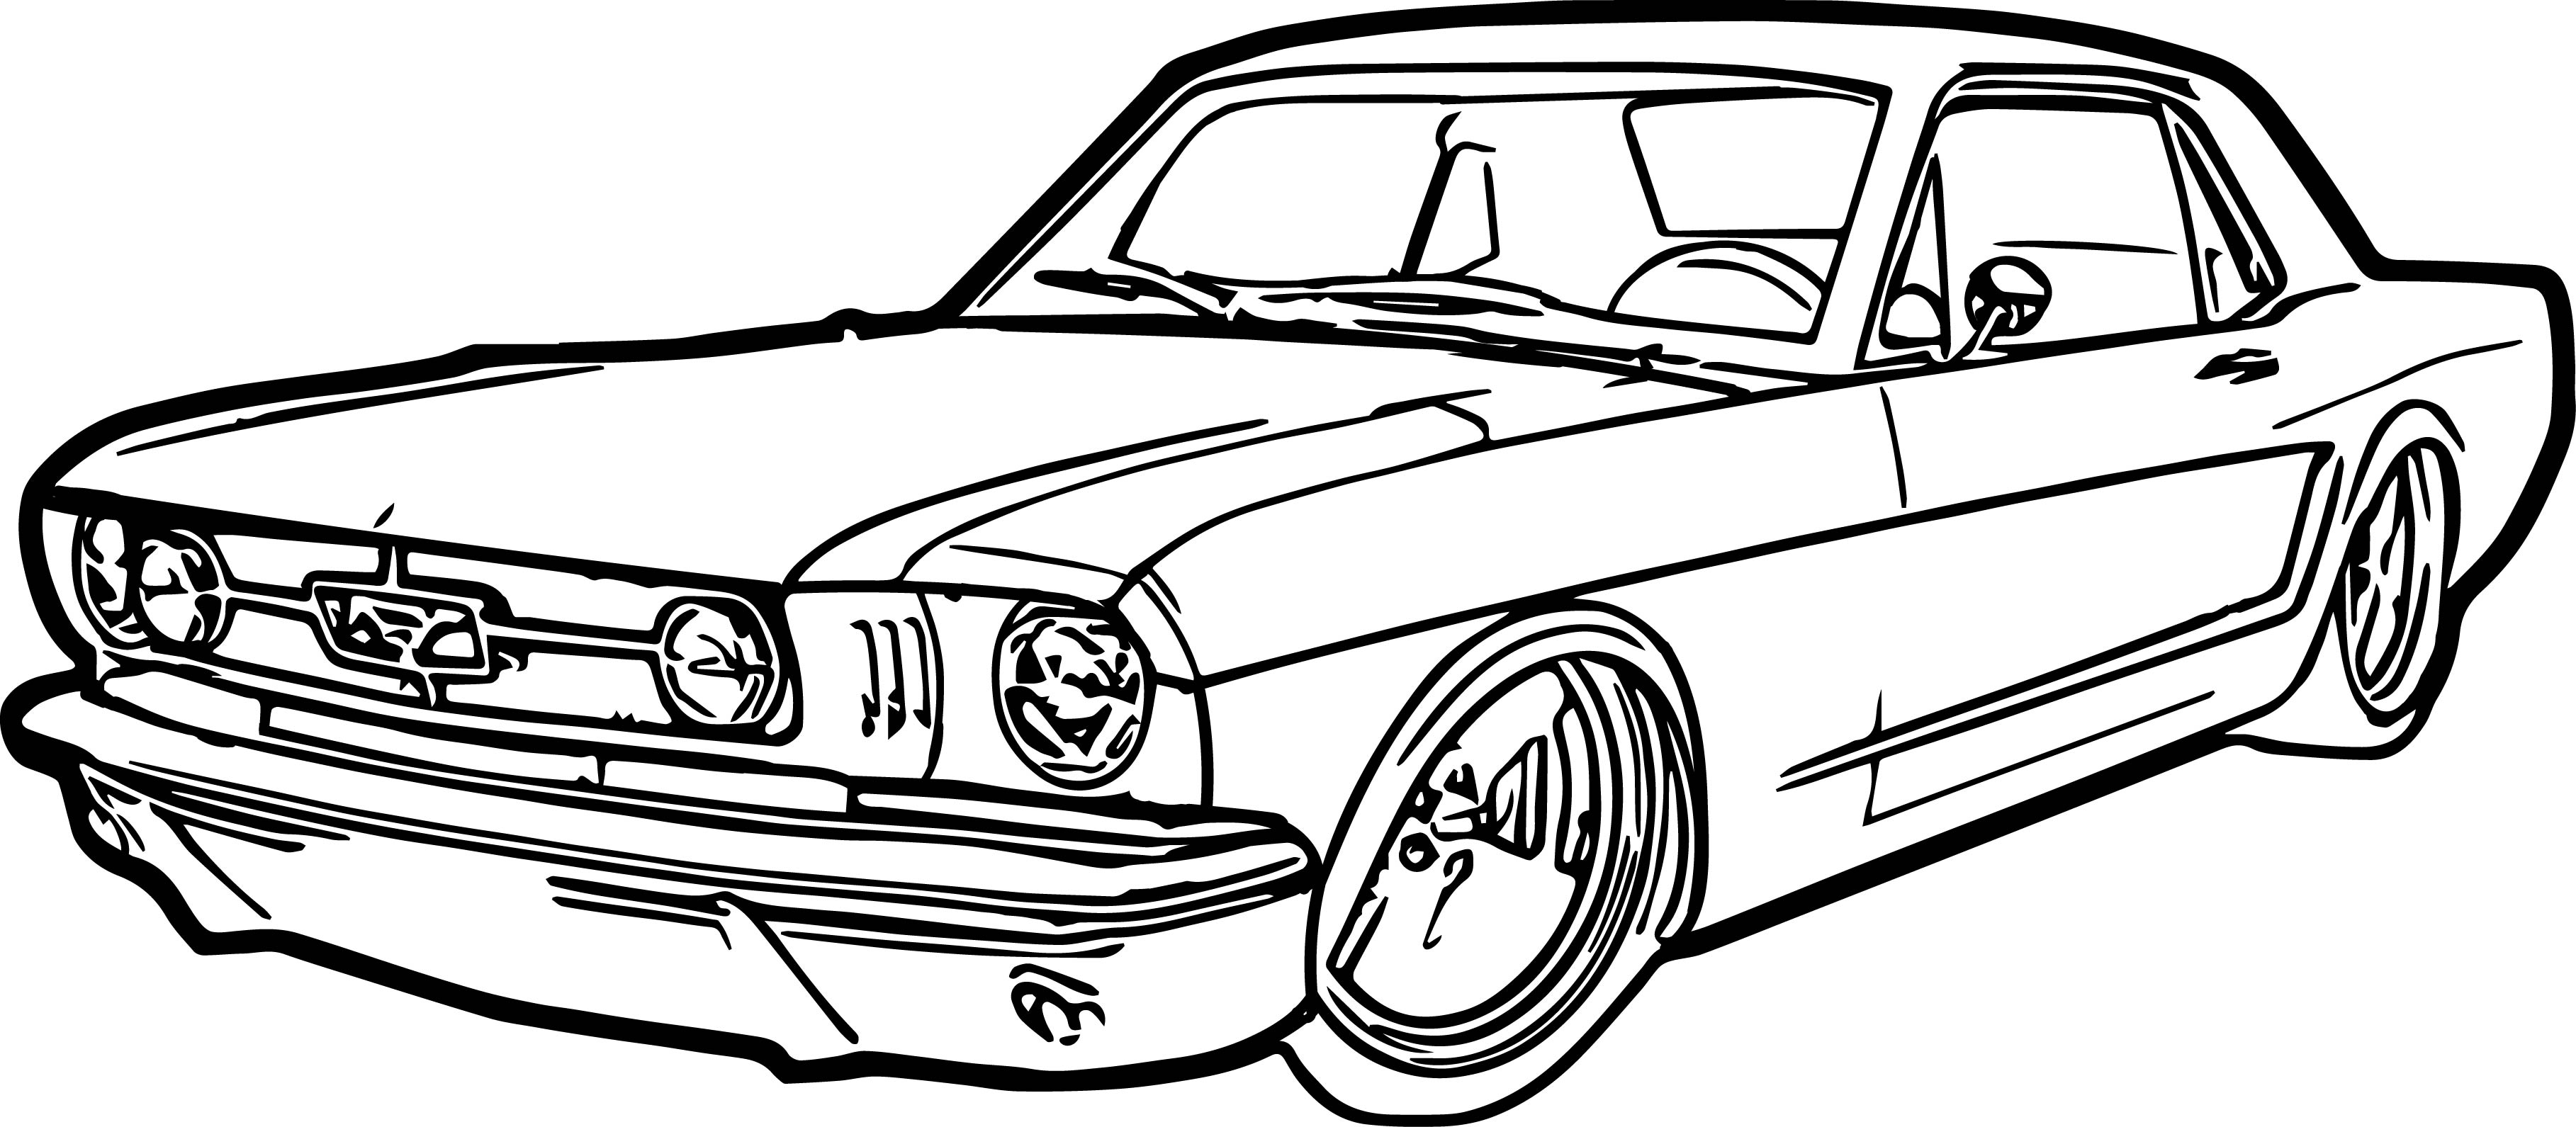 mustang coloring page - ford mustang car coloring page